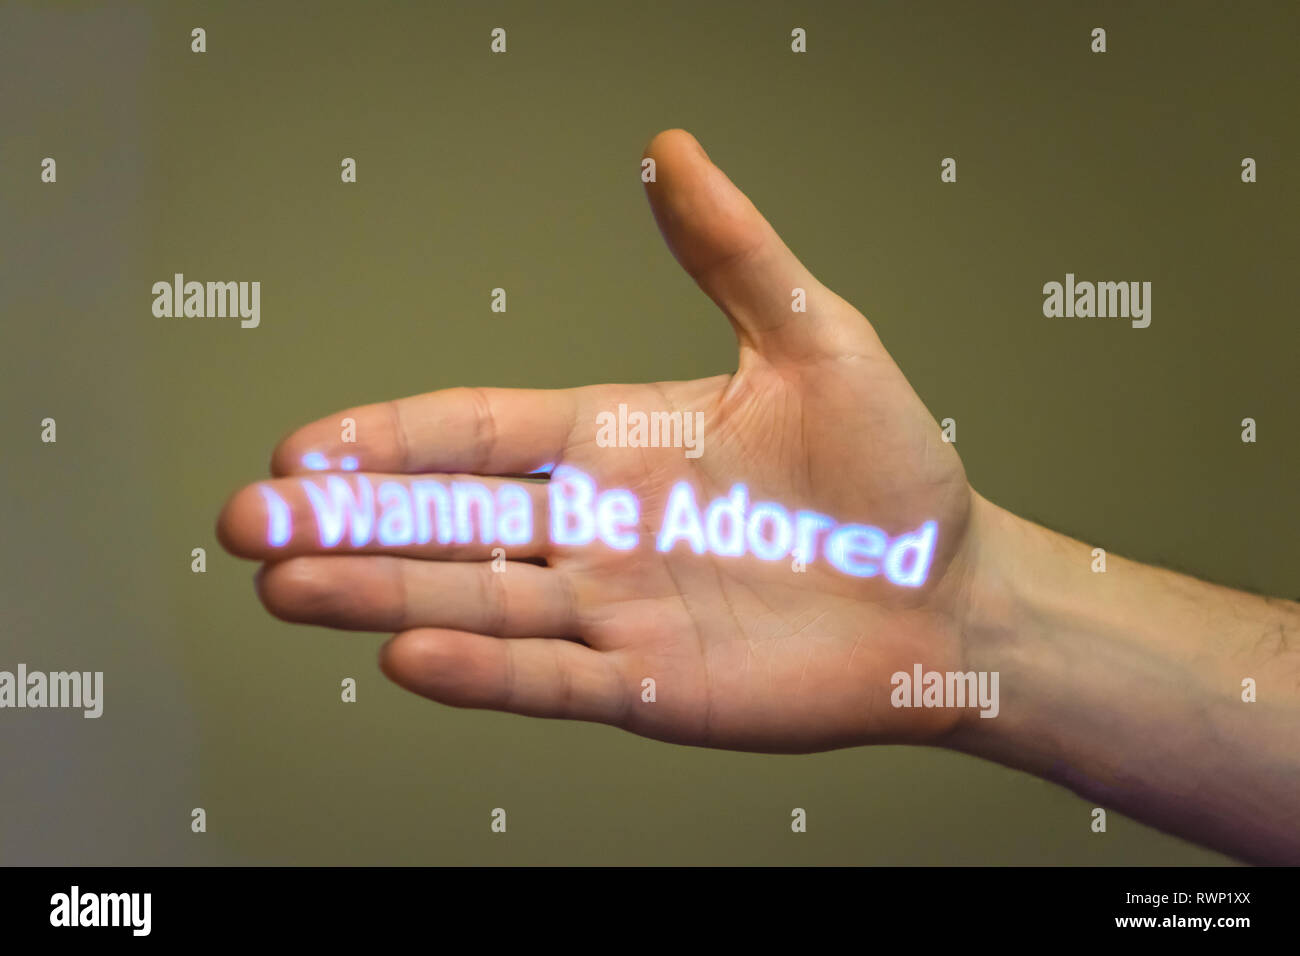 'I wanna be adored' statement projected on to a male hand - Stock Image